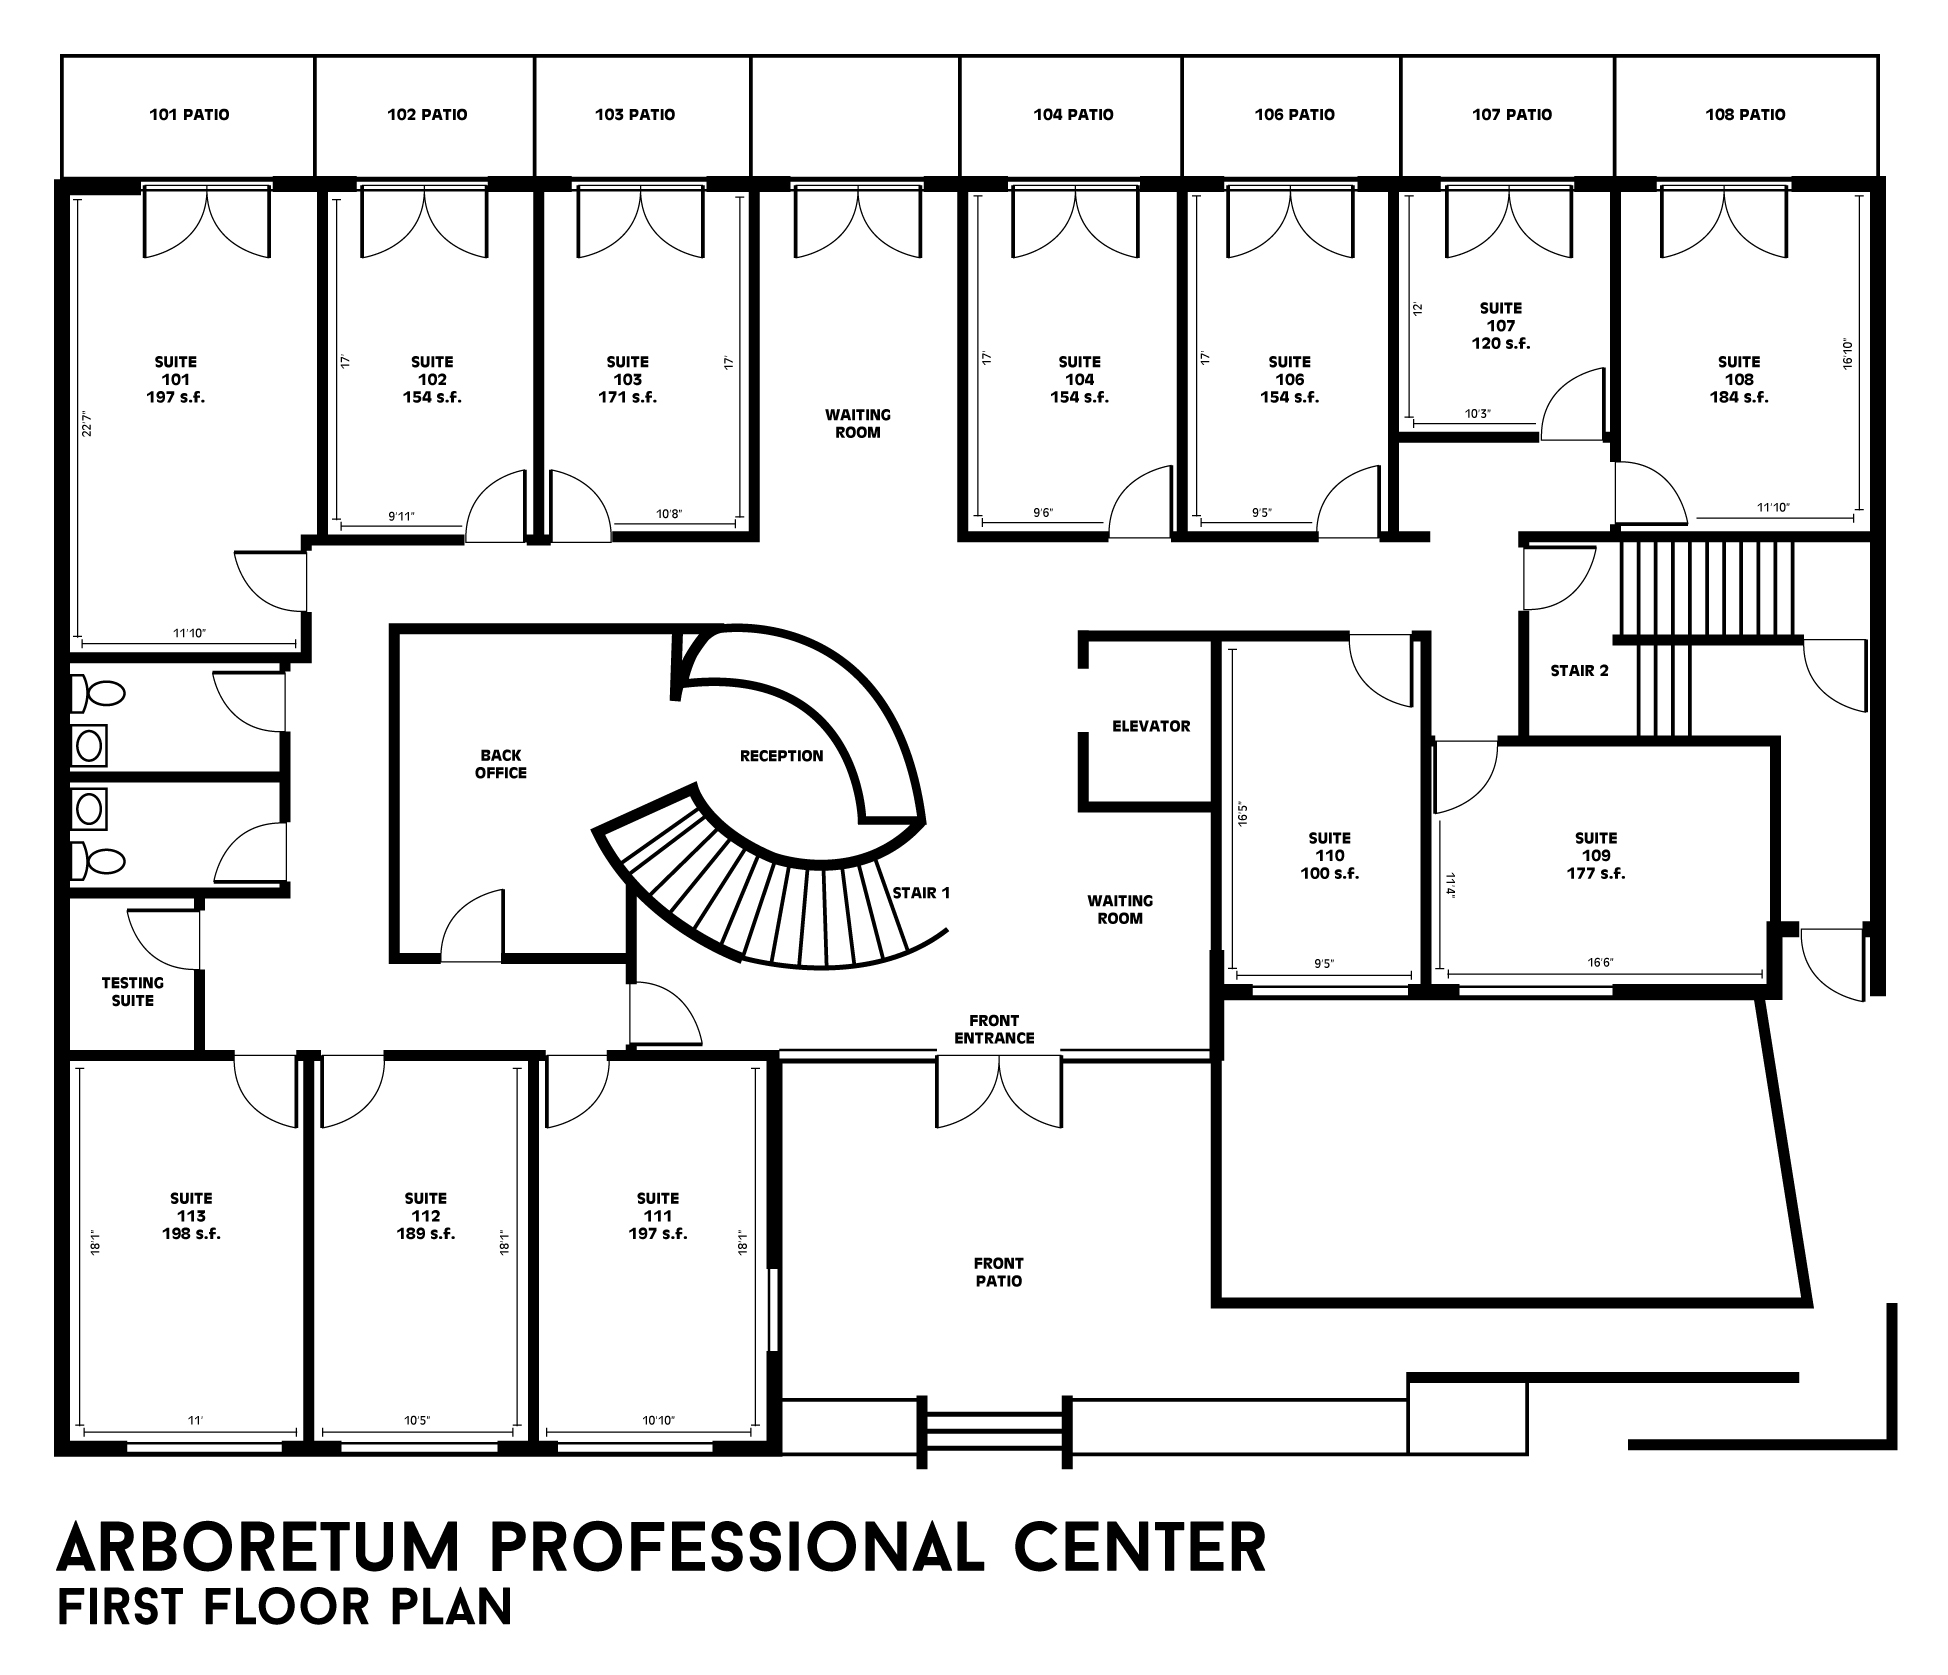 Building floor plans arboretum professional center for New building design plan